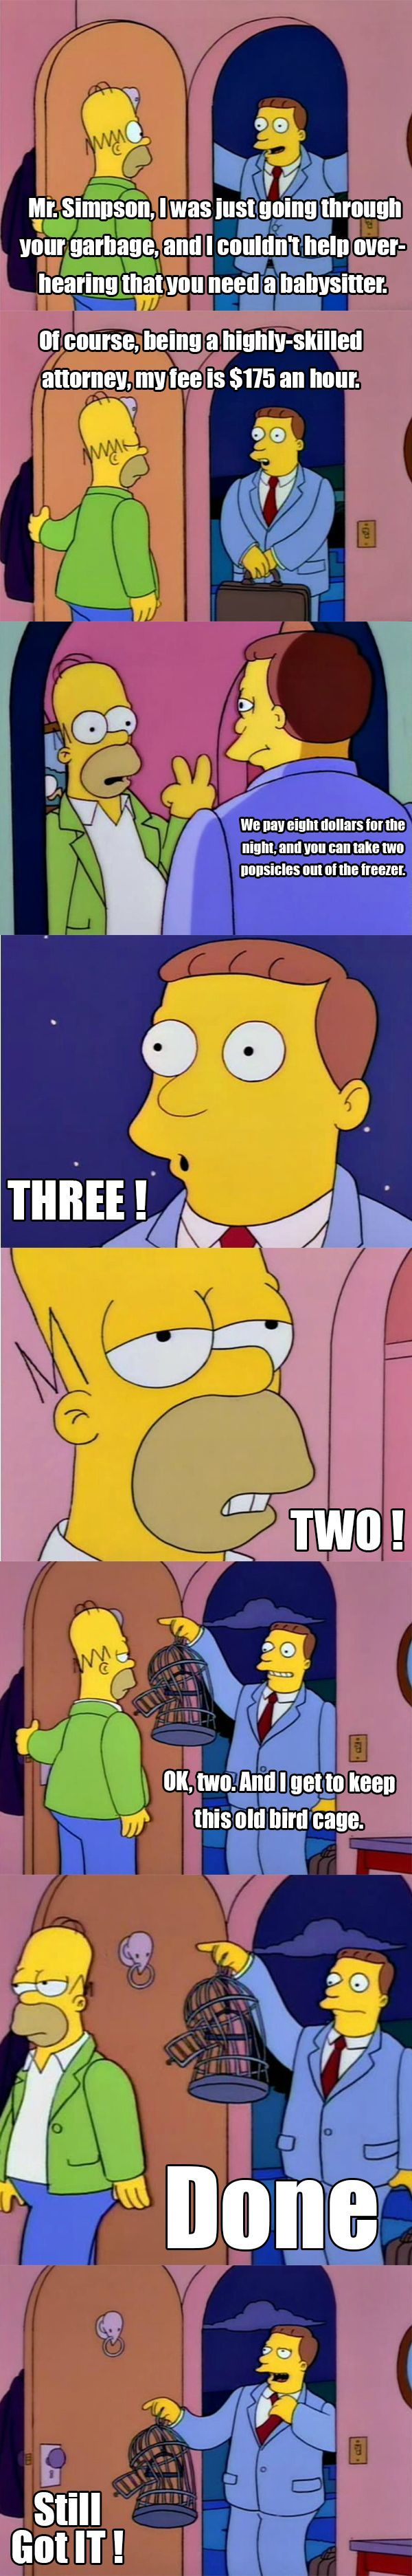 Lionel Hutz is one of the best Simpsons characters of all time. -D